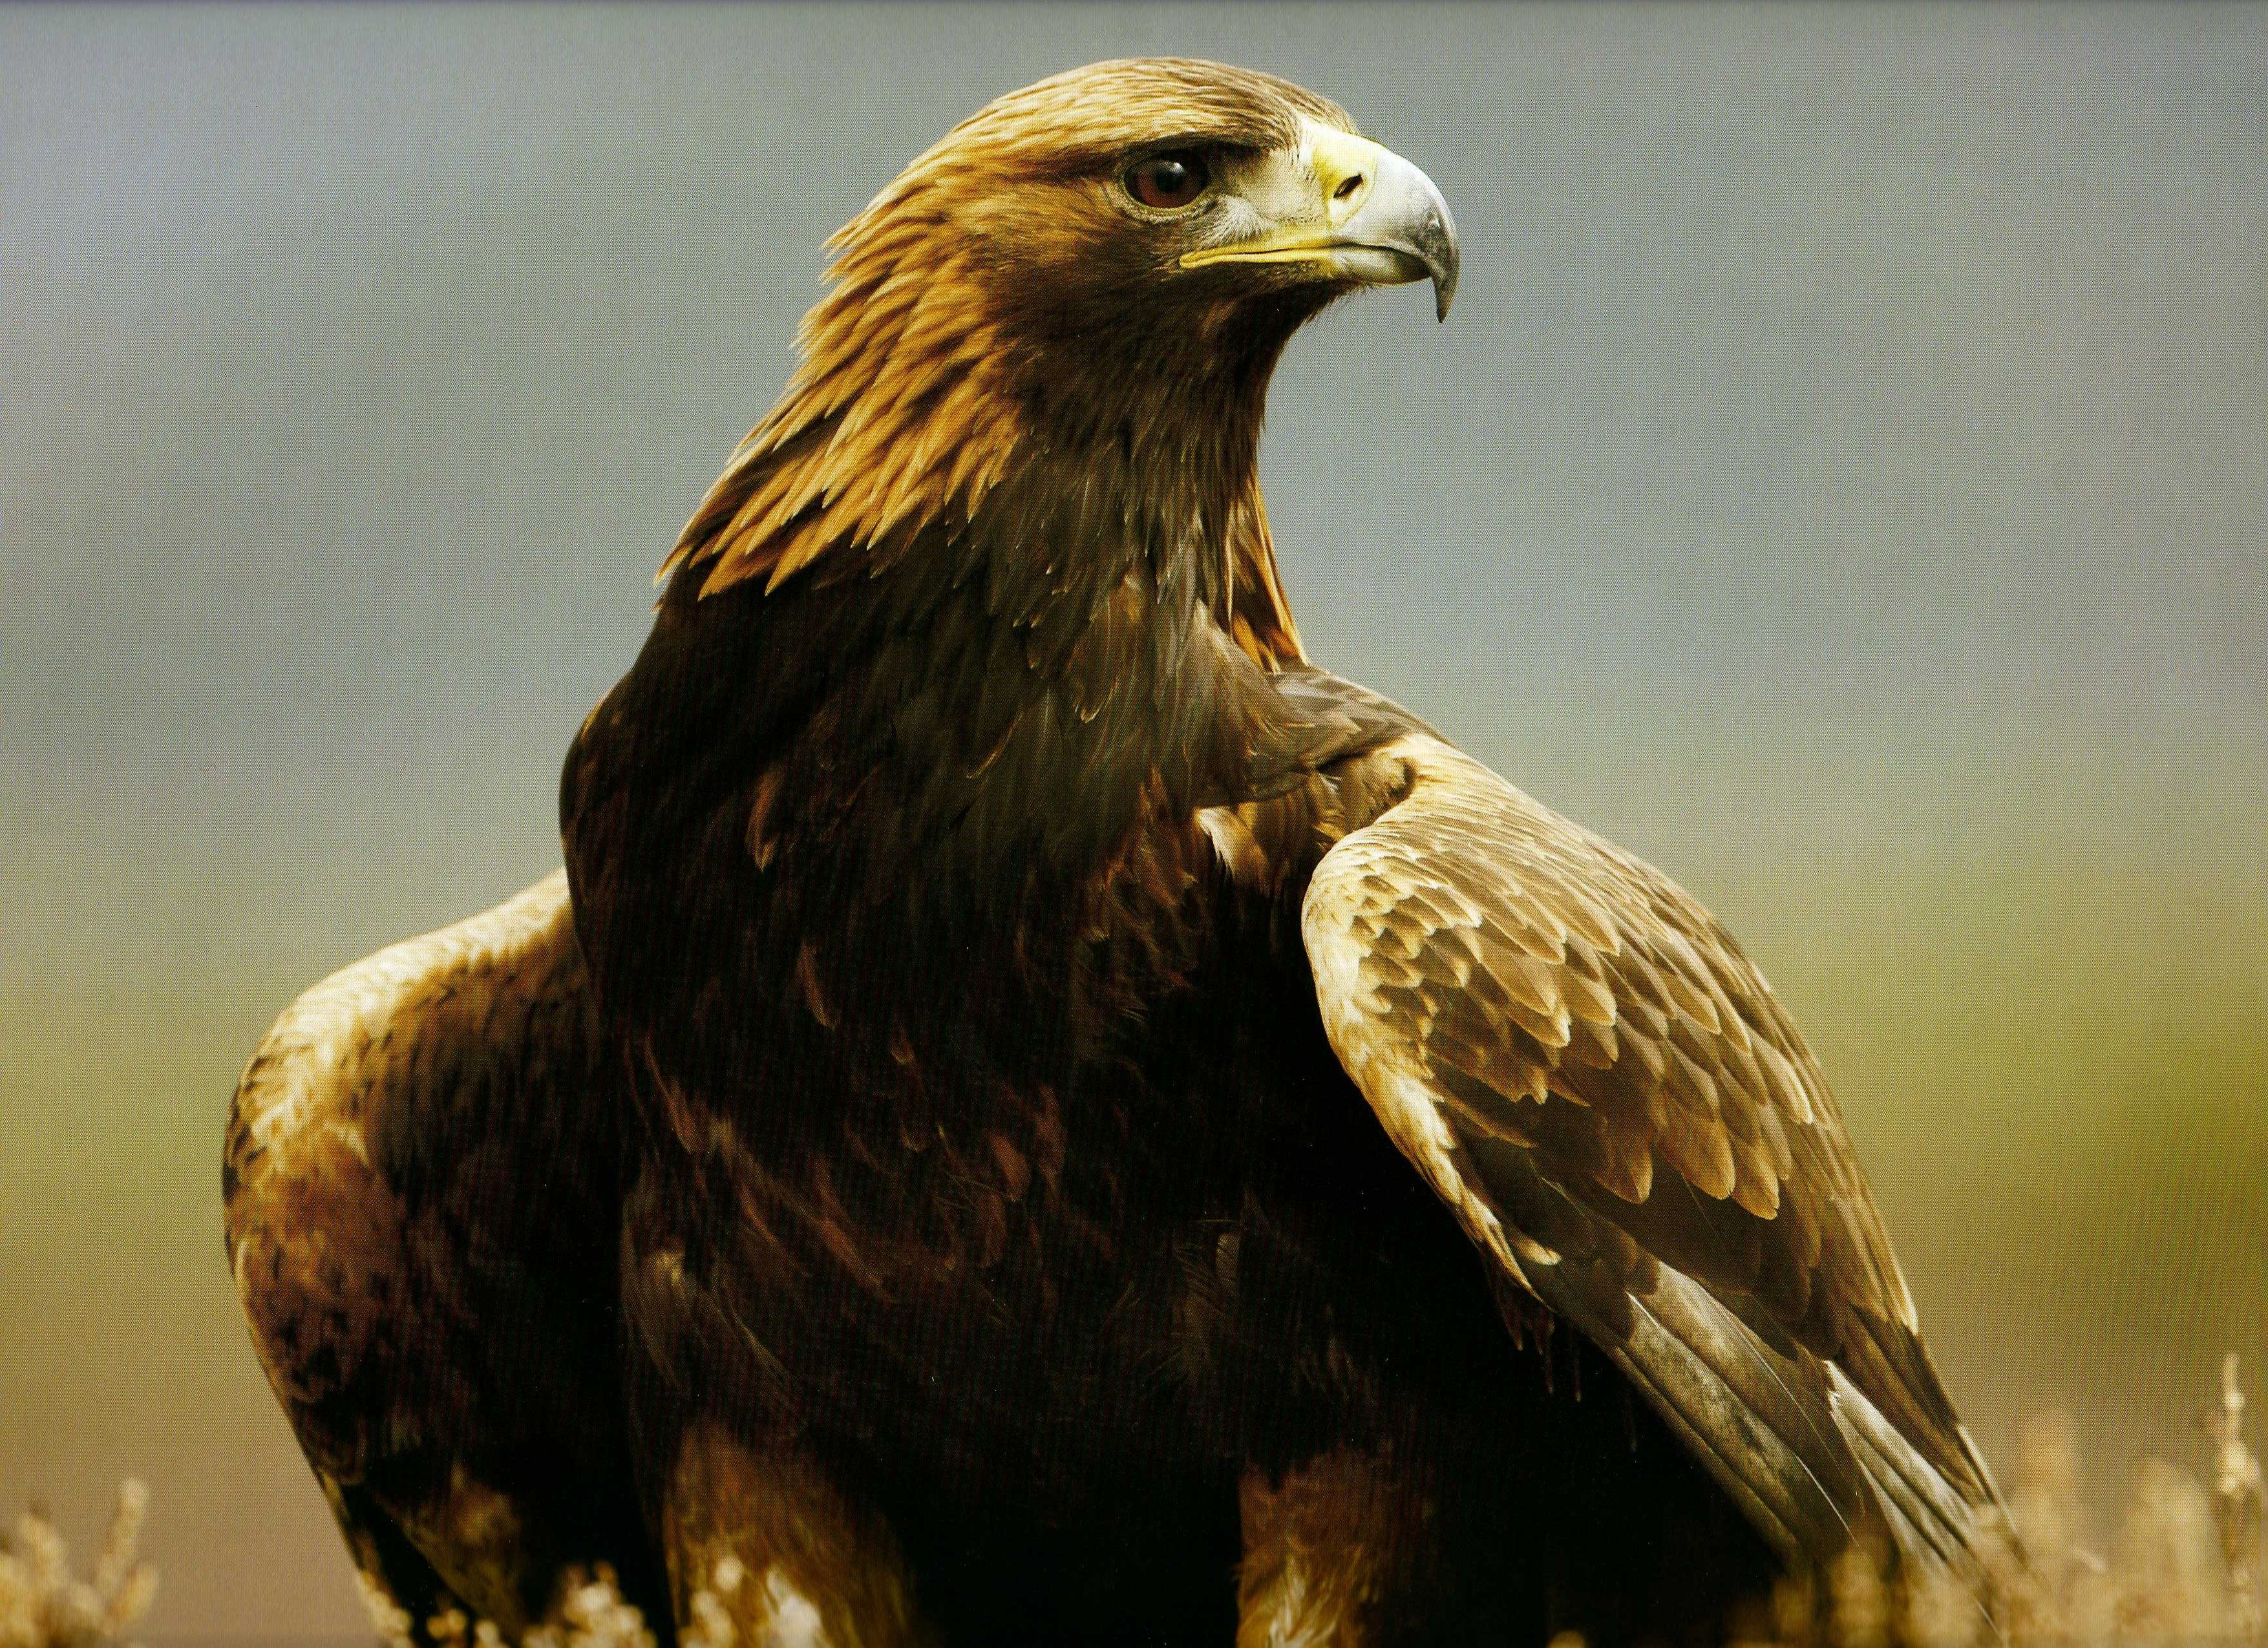 The Golden Eagle symbolized the soul, as well as the power of life over death, for the ancient Celts. Now almost extinct in Britain; this magnificent bird is seldom seen except in the north of Scotland. Scottish Highland Chieftains still wear three golden-eagle feathers in their bonnets to proclaim their rank. Source: http://www.mysticalmind.com/Shadows/ezine/celtic/CLZBirch.htm